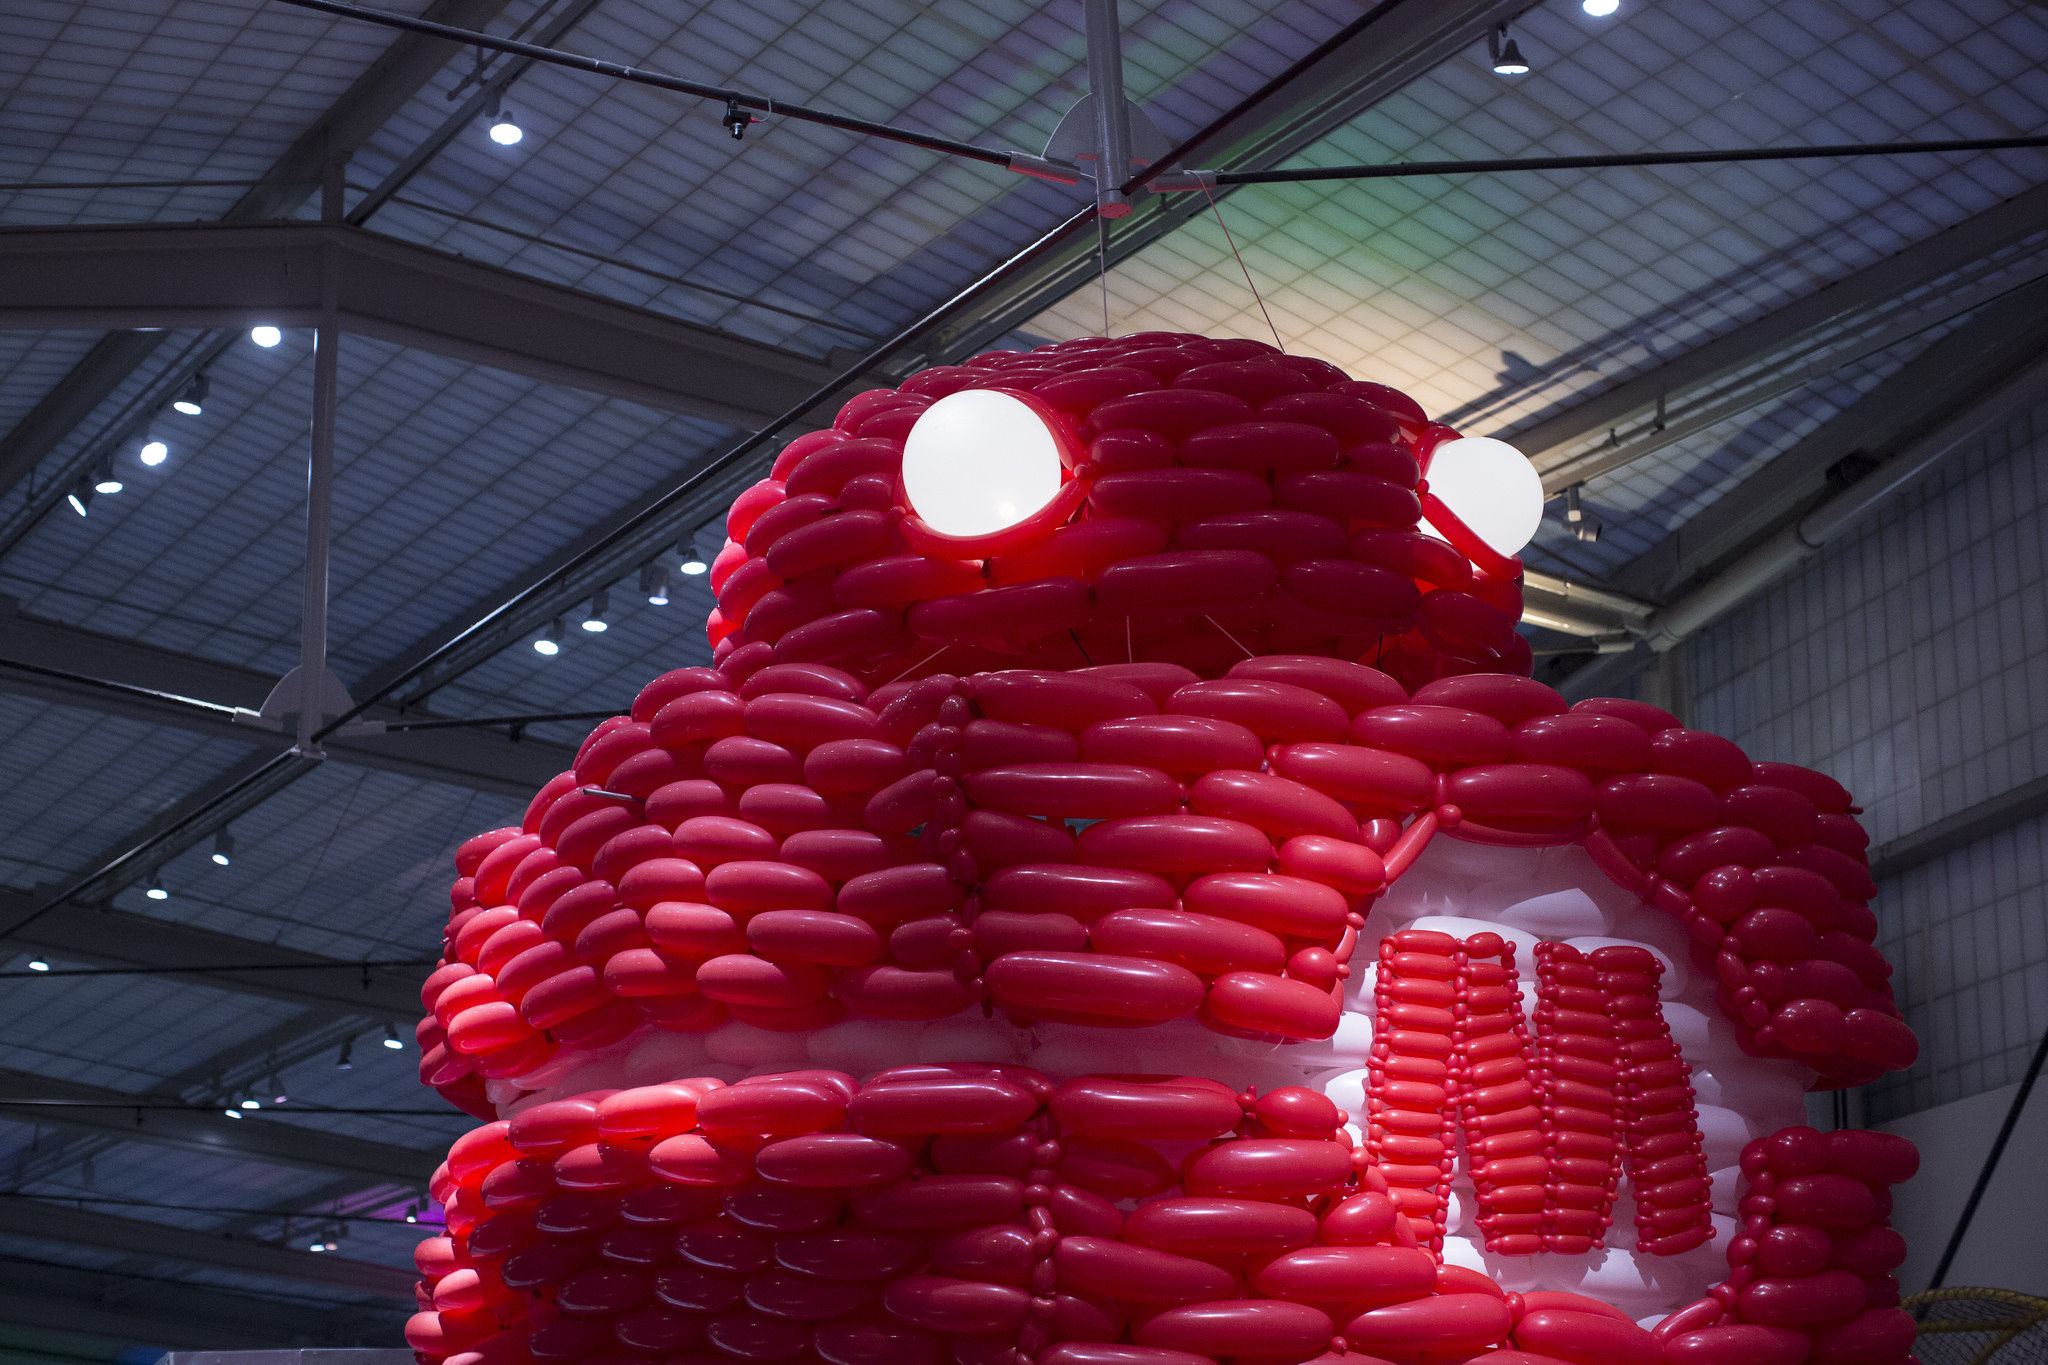 This Week in Making: World Maker Faire Recaps, Halloween, and Drones